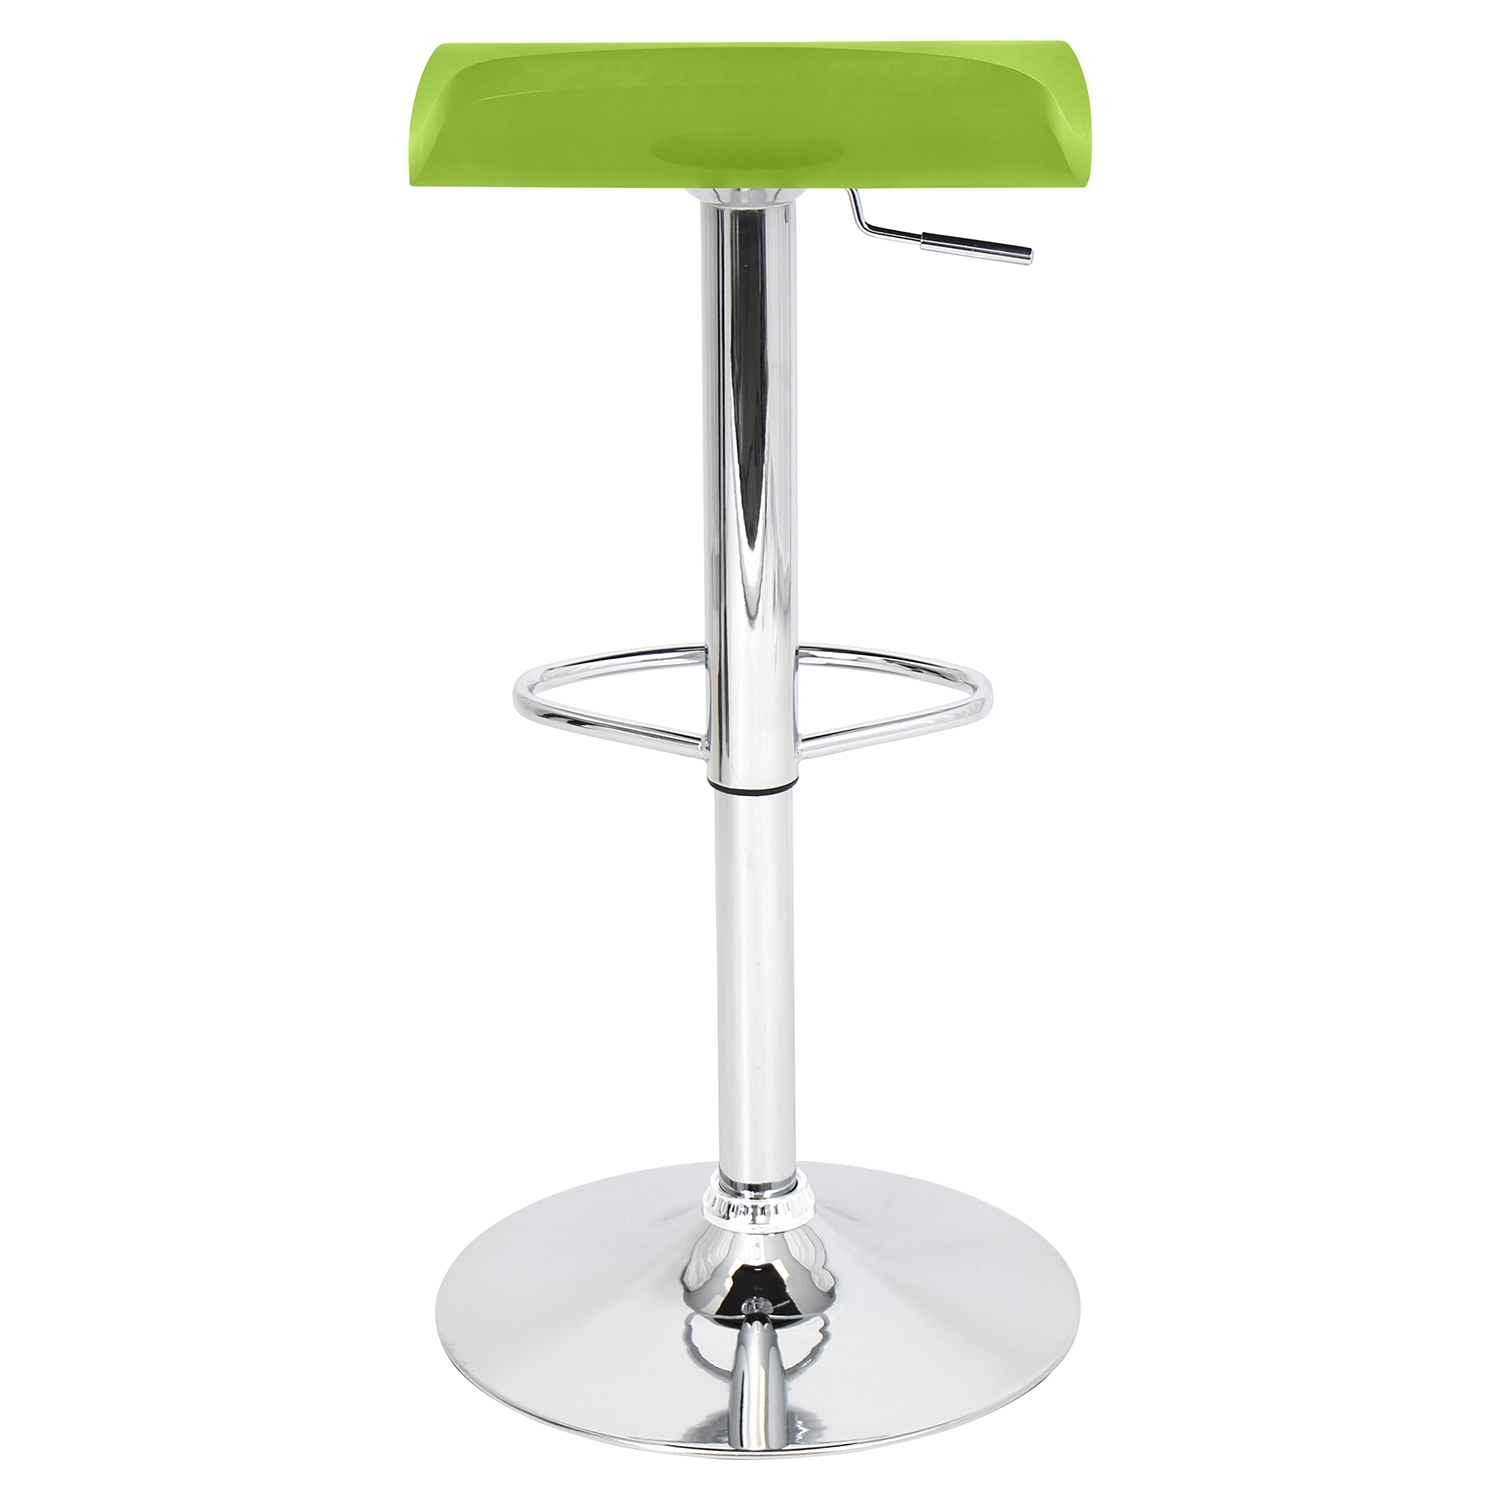 Surf Height Adjustable Barstool - Swivel, Green - LMS-BS-TW-SURF-GN